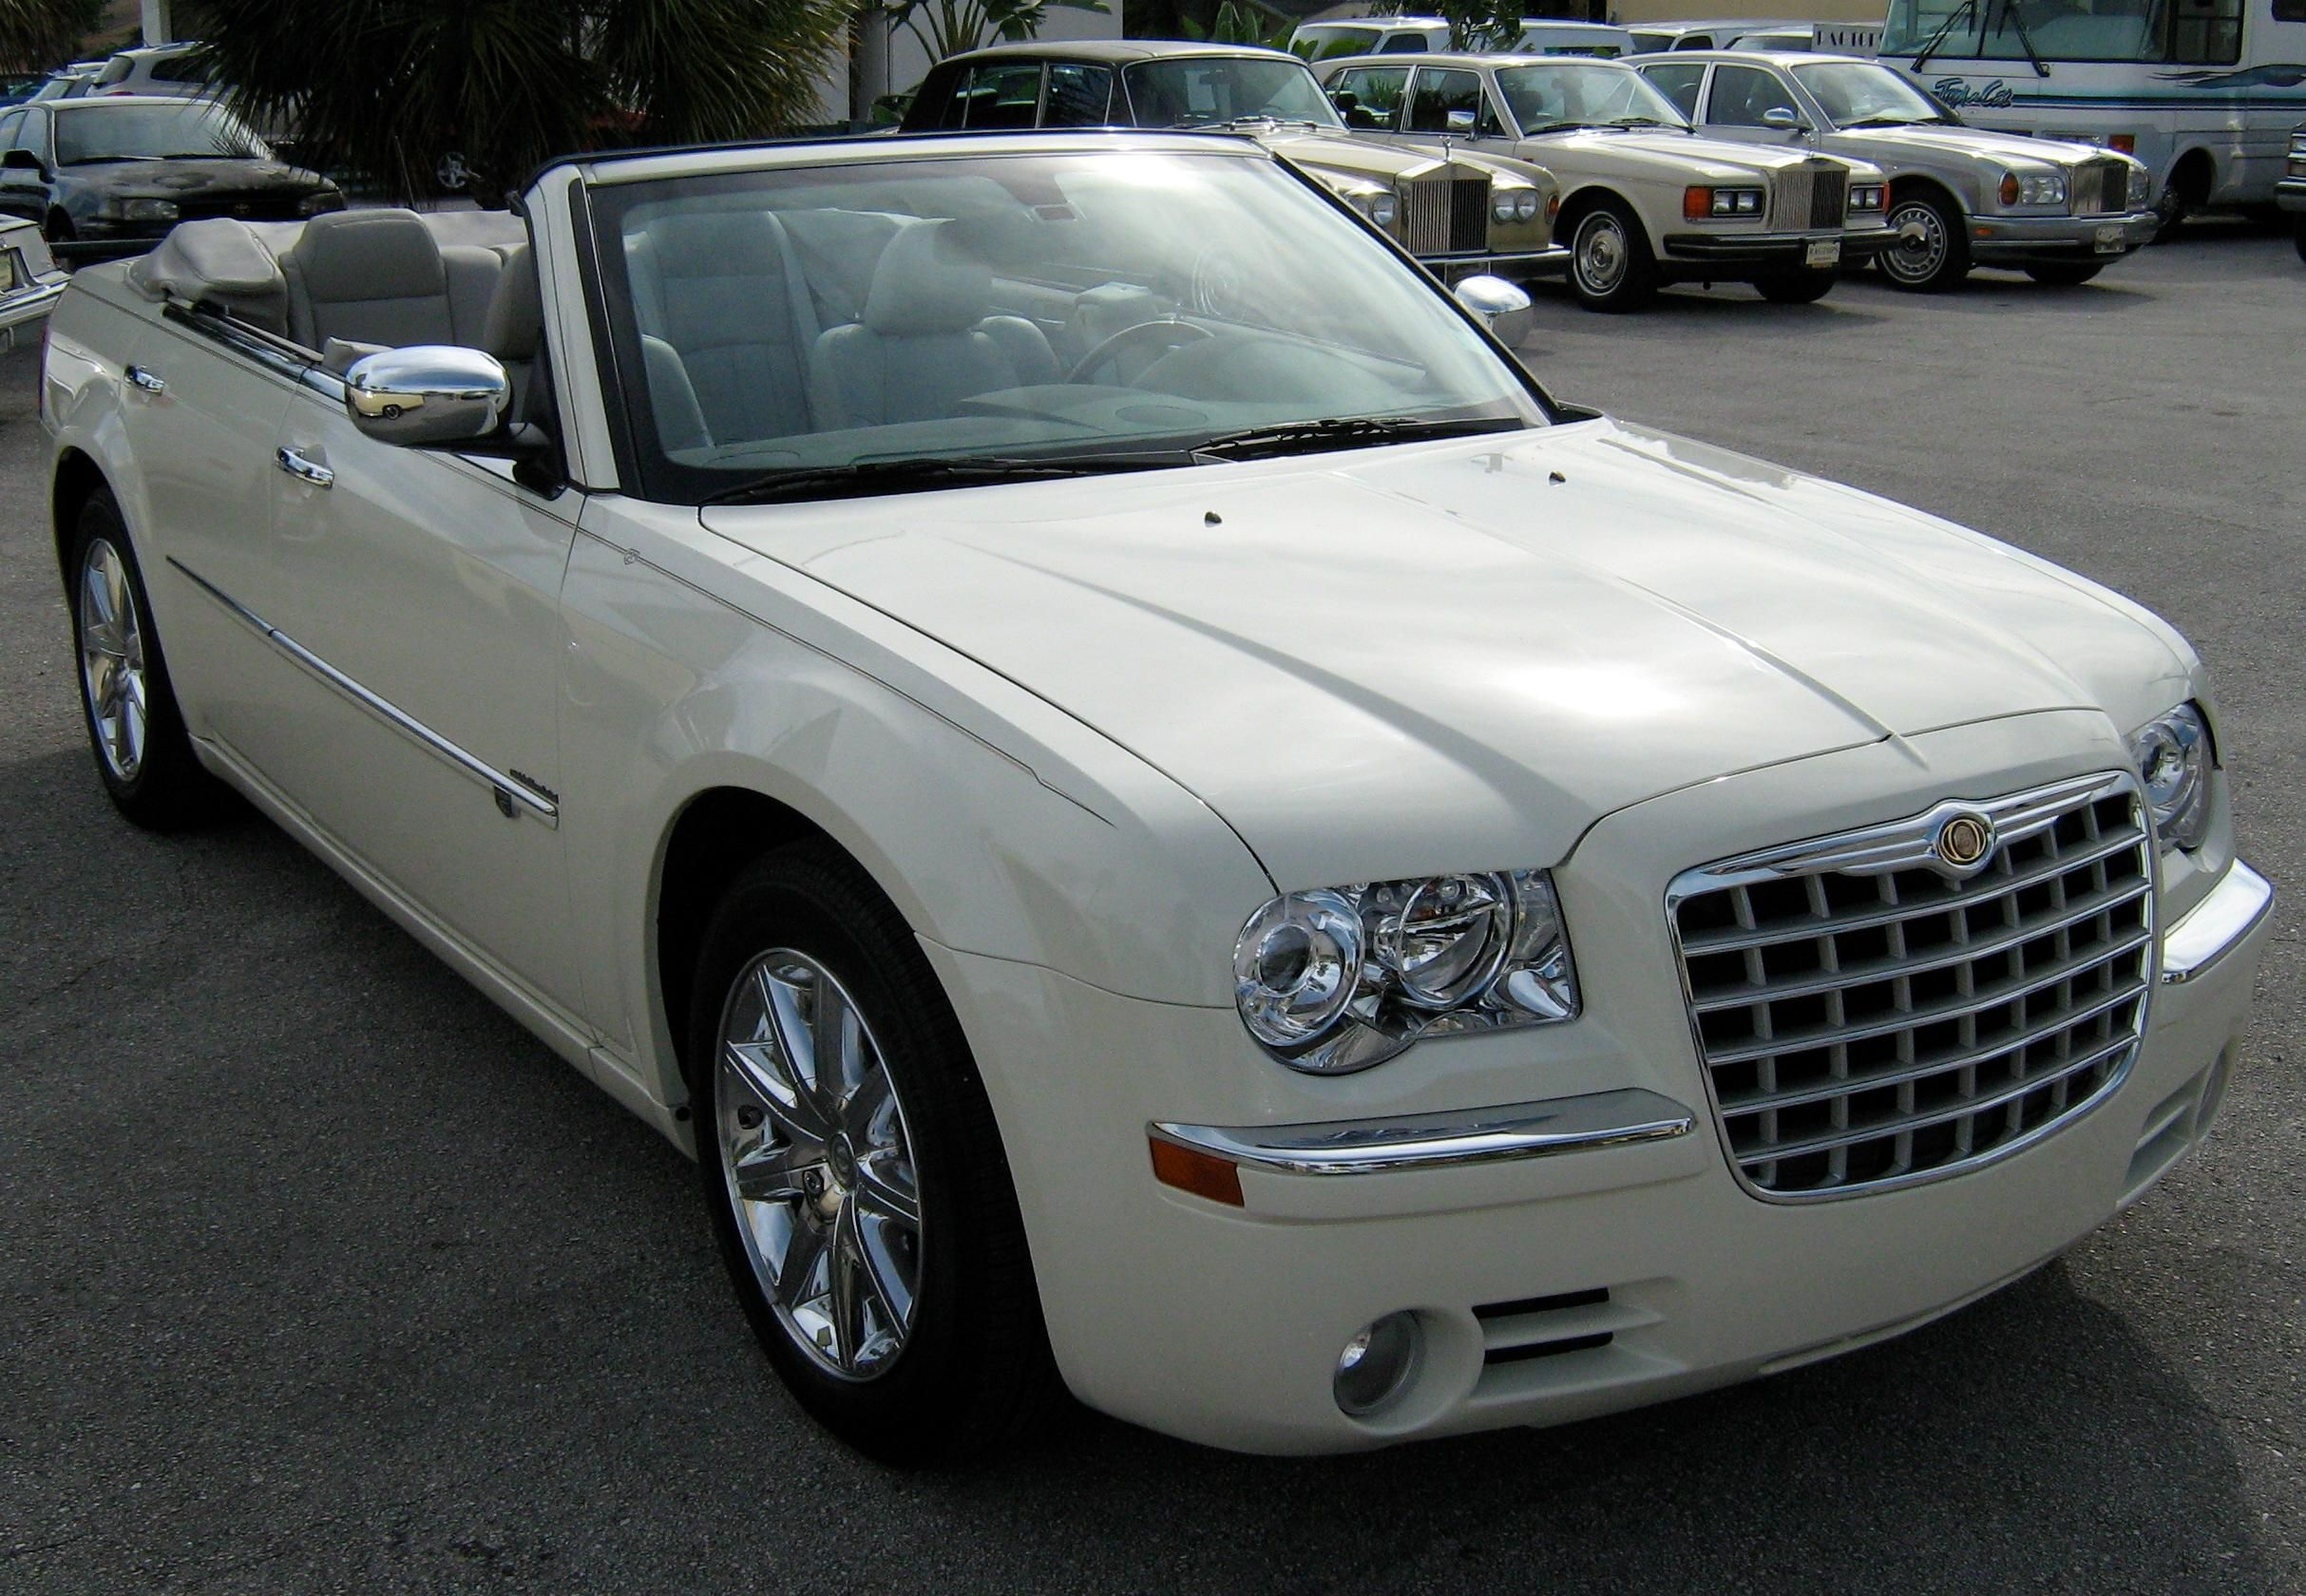 2008 Chrysler 300 Convertible Car Chrysler 300